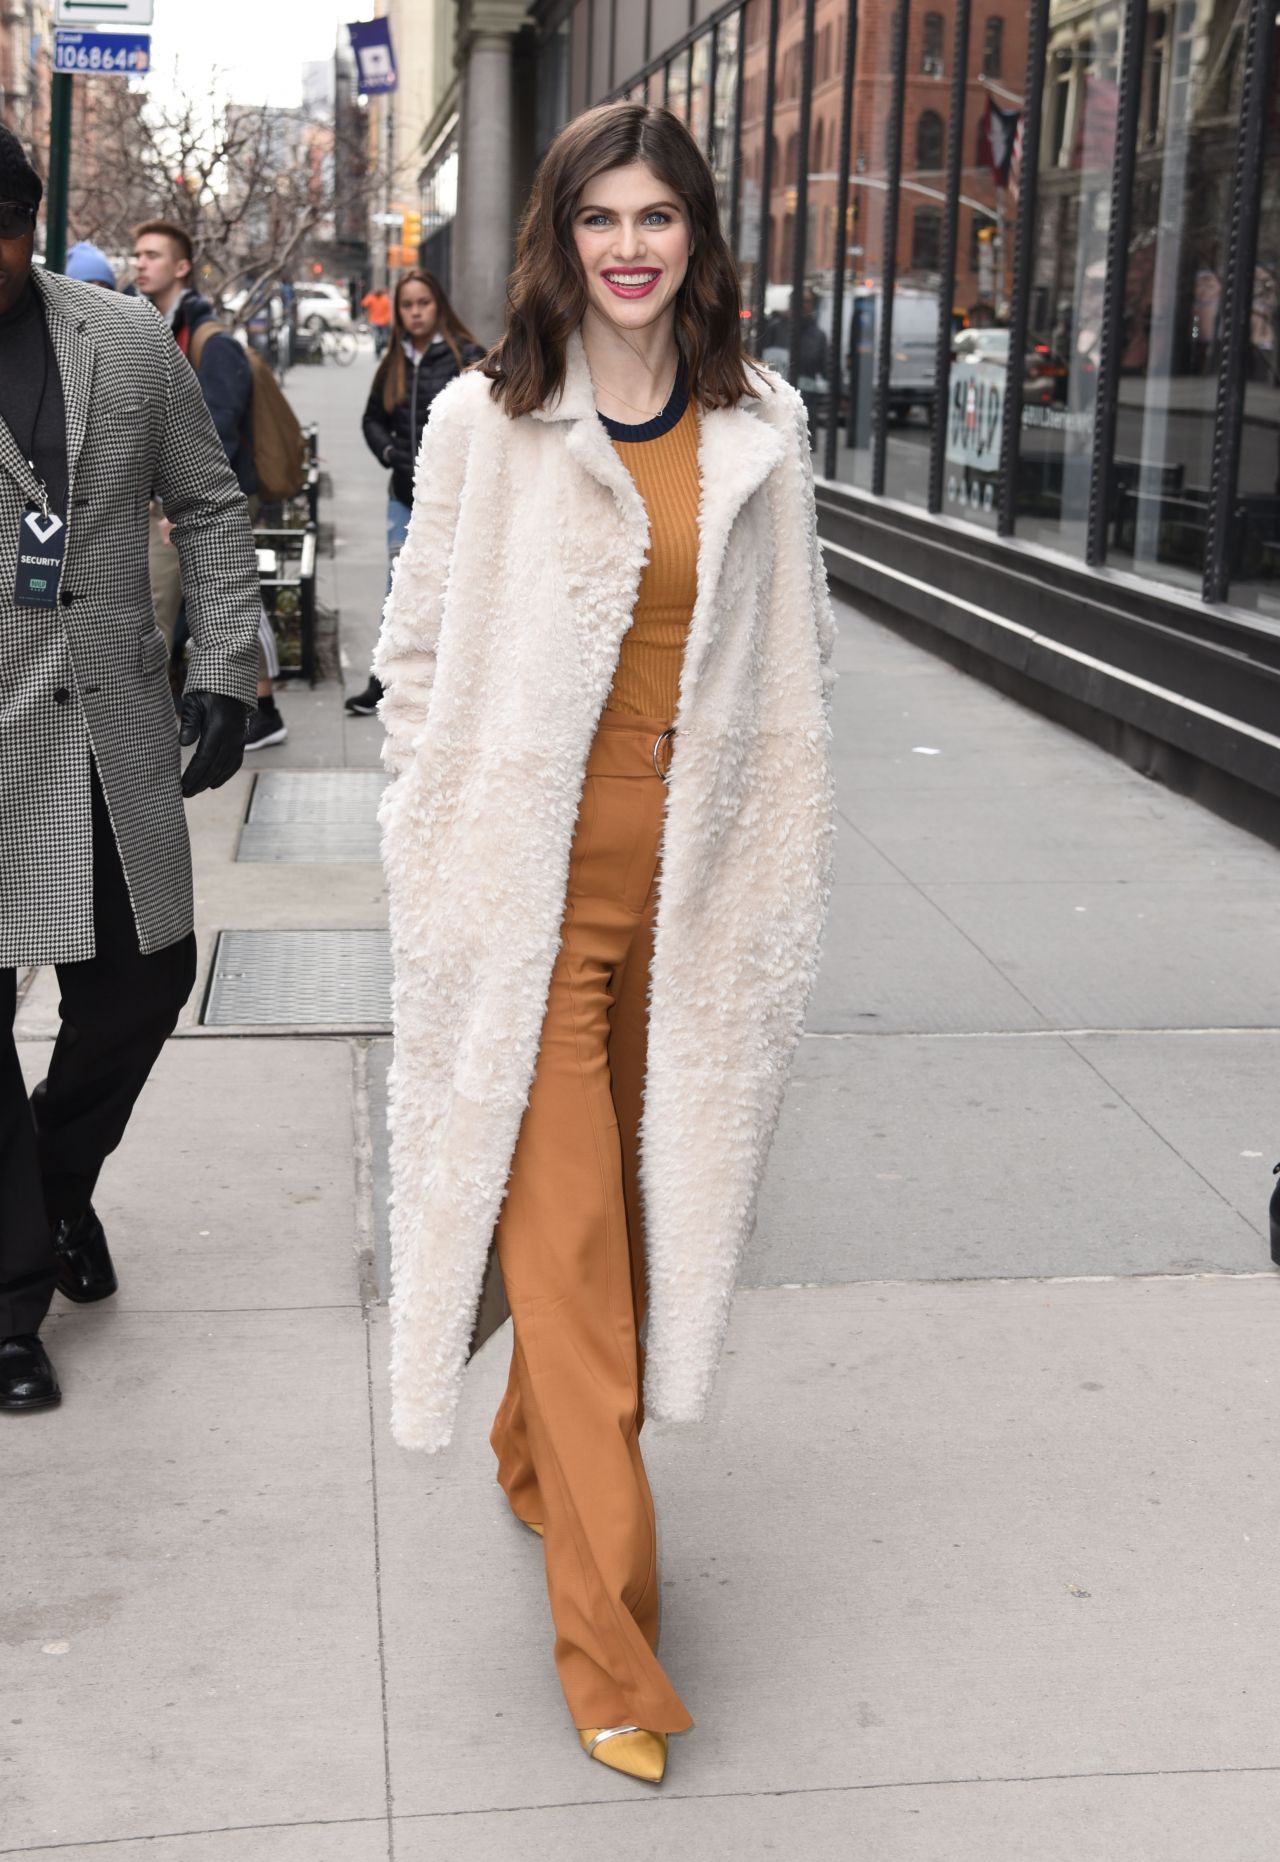 http://celebmafia.com/wp-content/uploads/2018/01/alexandra-daddario-style-outside-aol-live-in-nyc-01-29-2018-5.jpg